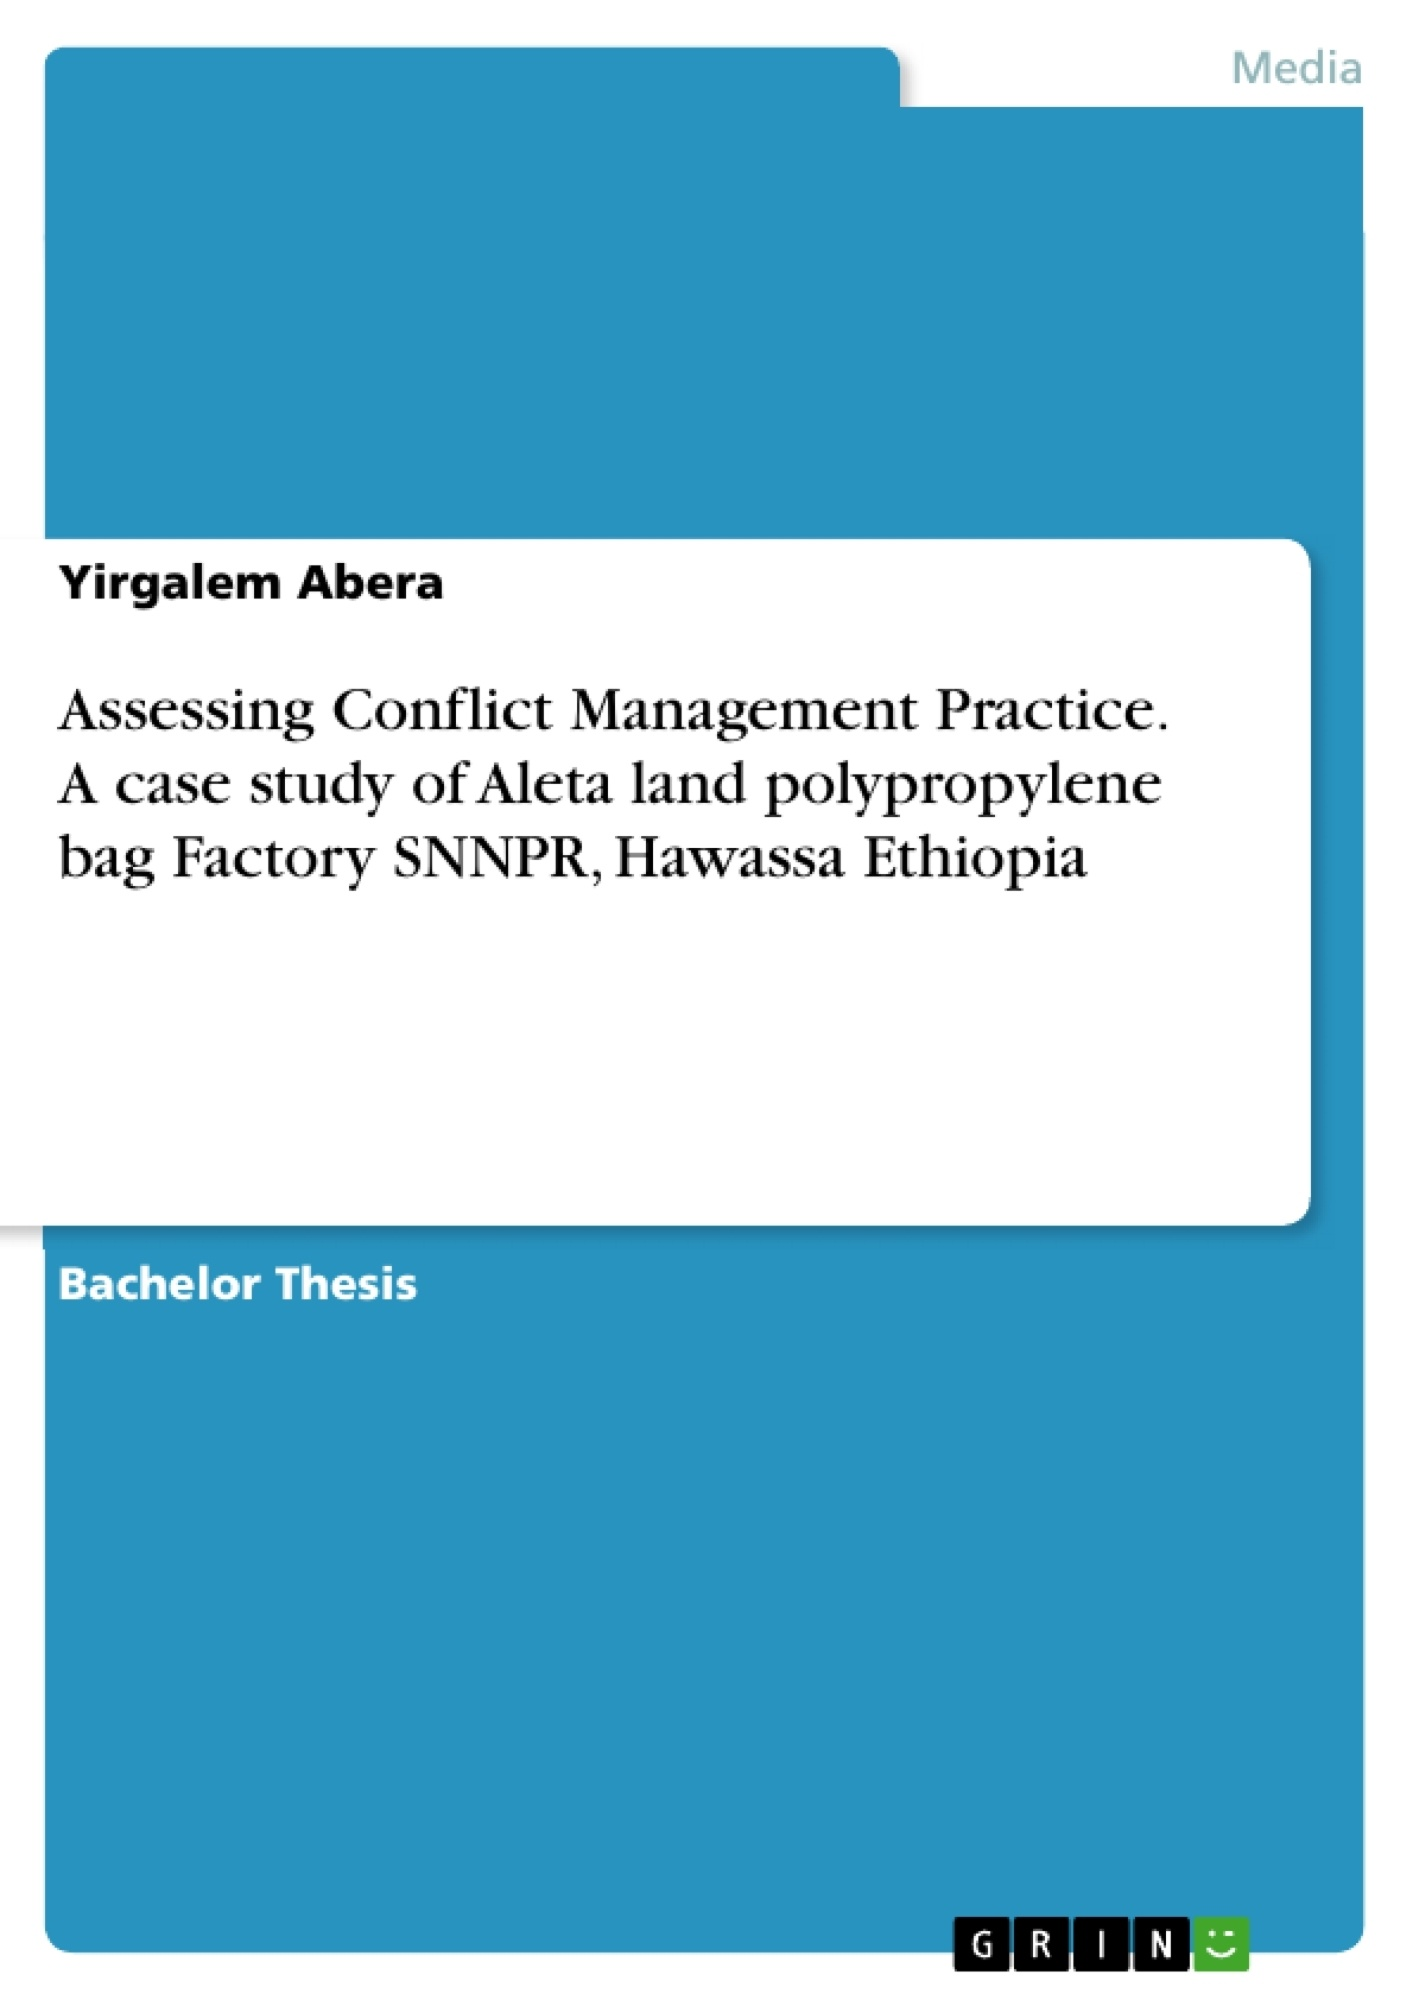 GRIN - Assessing Conflict Management Practice  A case study of Aleta land  polypropylene bag Factory SNNPR, Hawassa Ethiopia